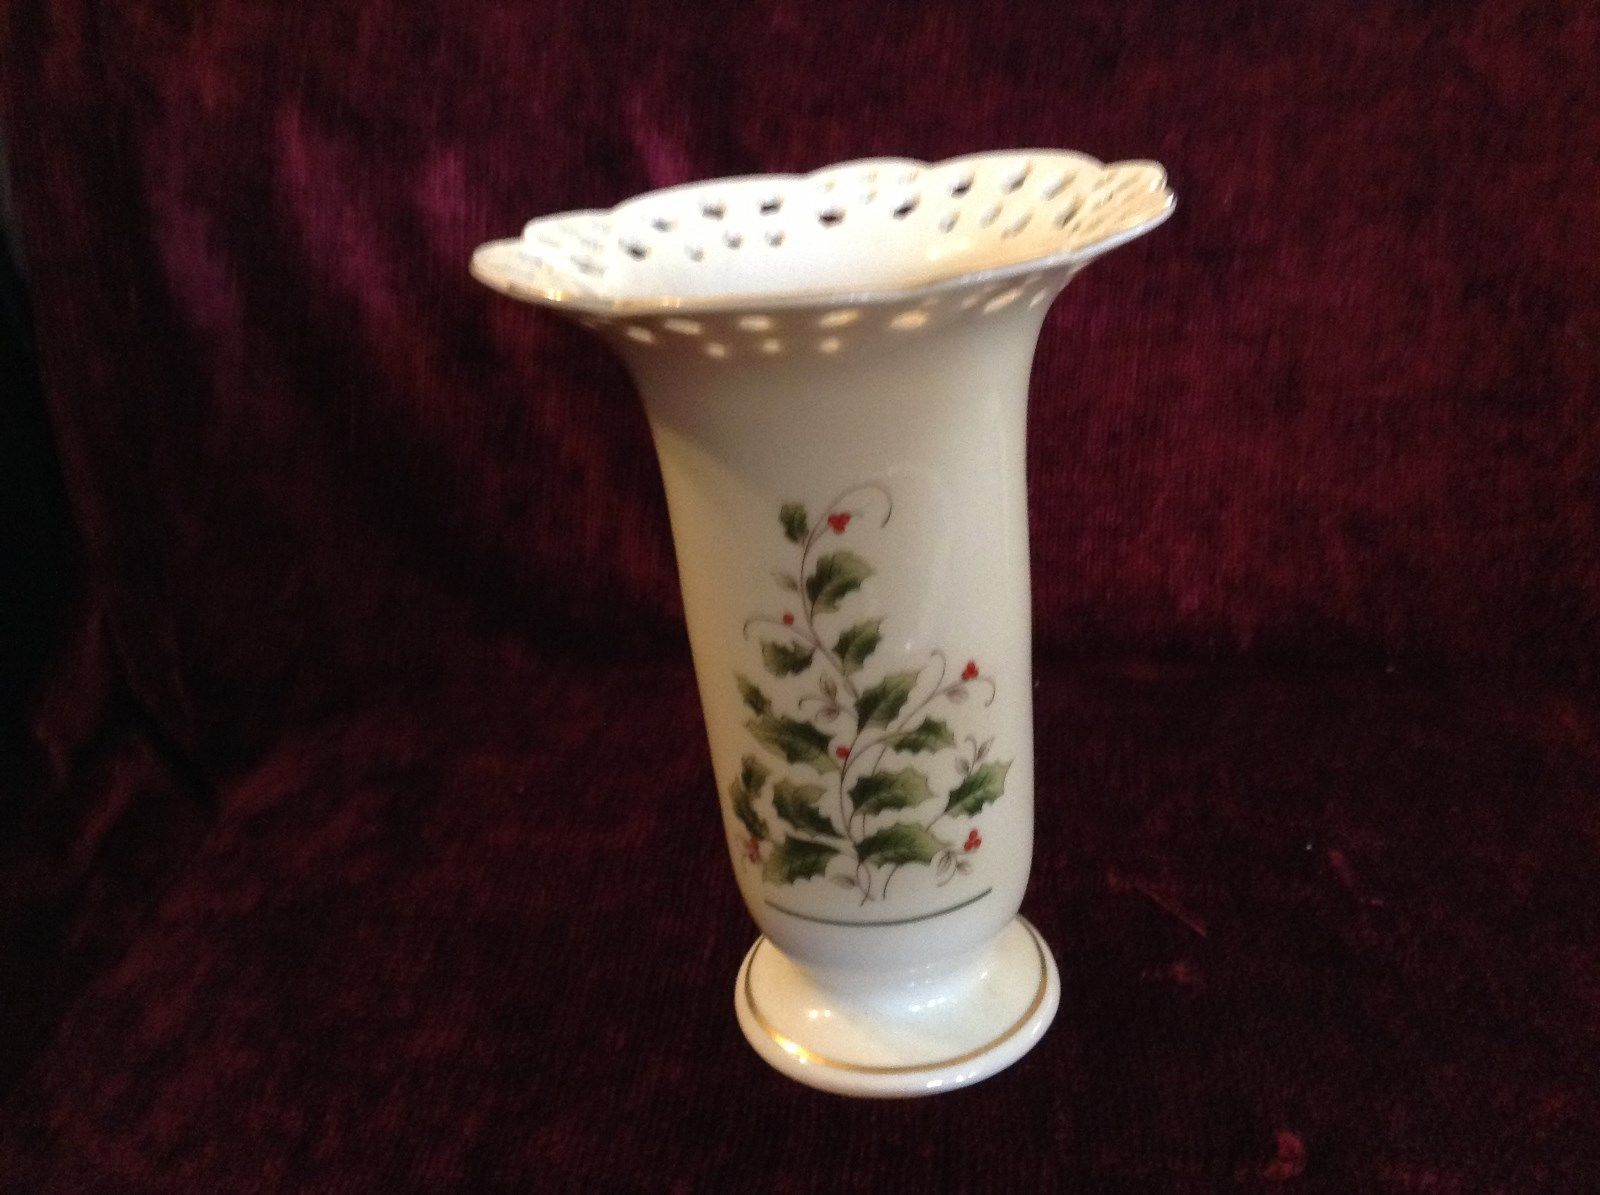 Large Japanese Made Vase with Berries Vines Interesting Design Gold Tone Rim